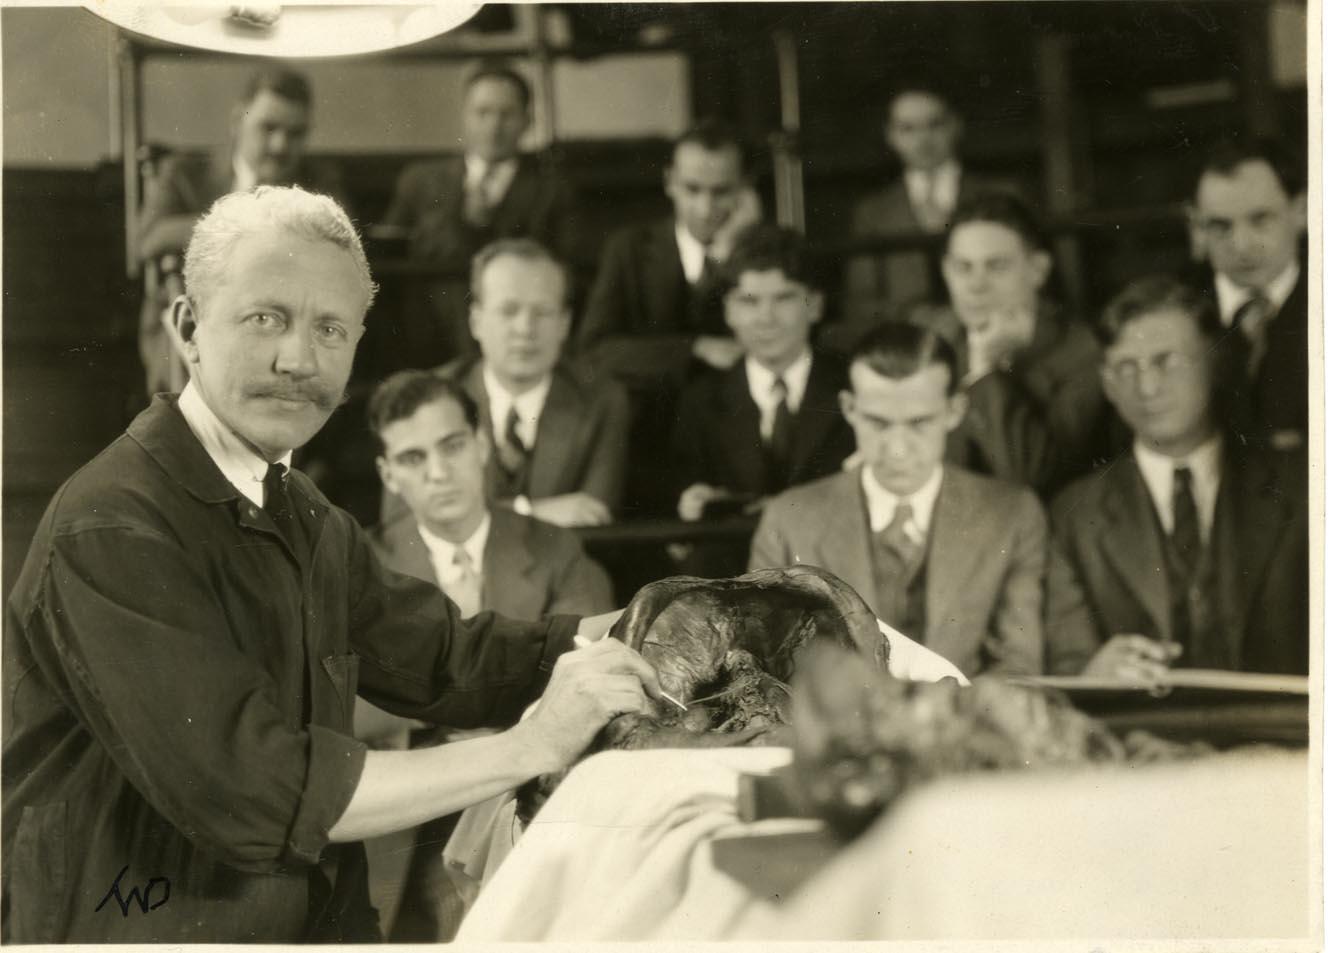 New Exhibit Charts the History of Dissection at Harvard Medical School